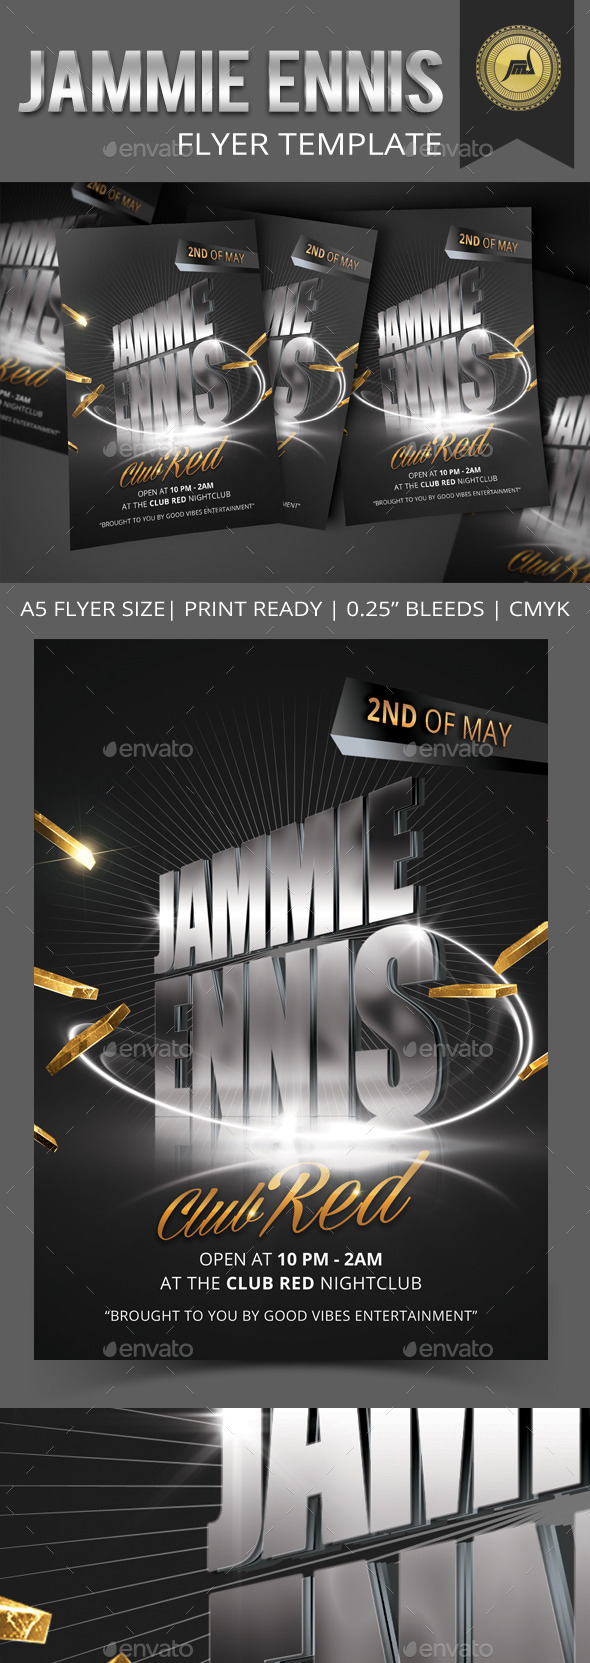 GraphicRiver Jammie Ennis Flyer Template 11189905